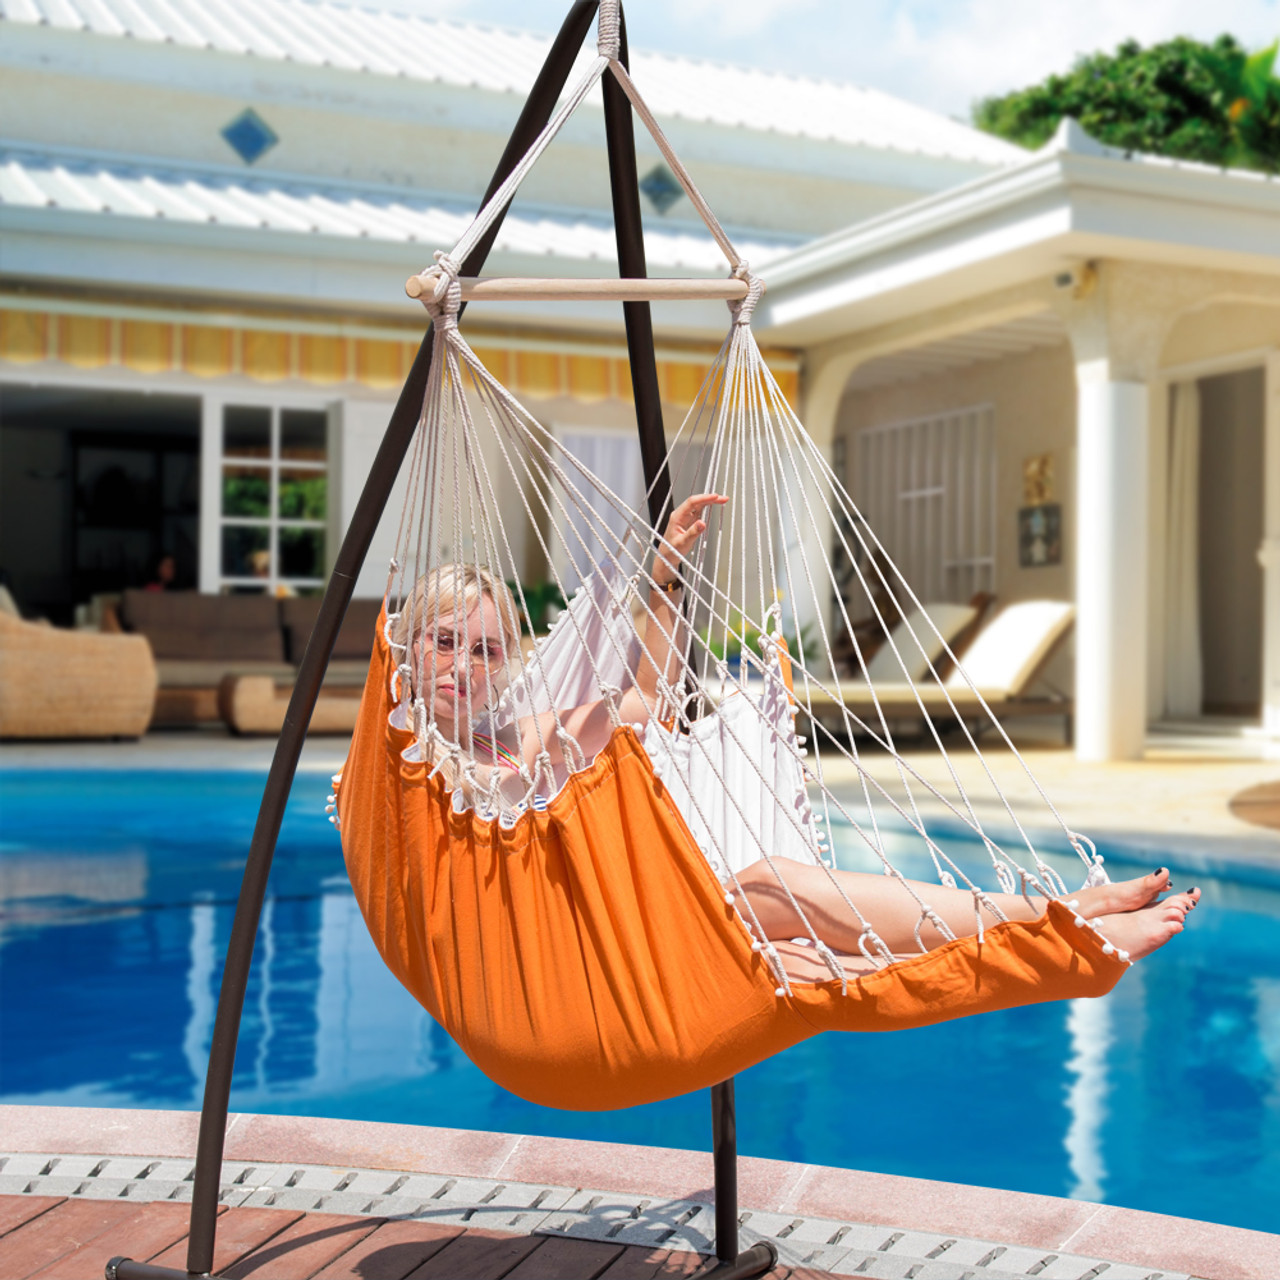 LazyDaze Hammocks Large Hanging Hammock Swing Lounger Chair Seat With  Footrest And 2 Throw Pillows,